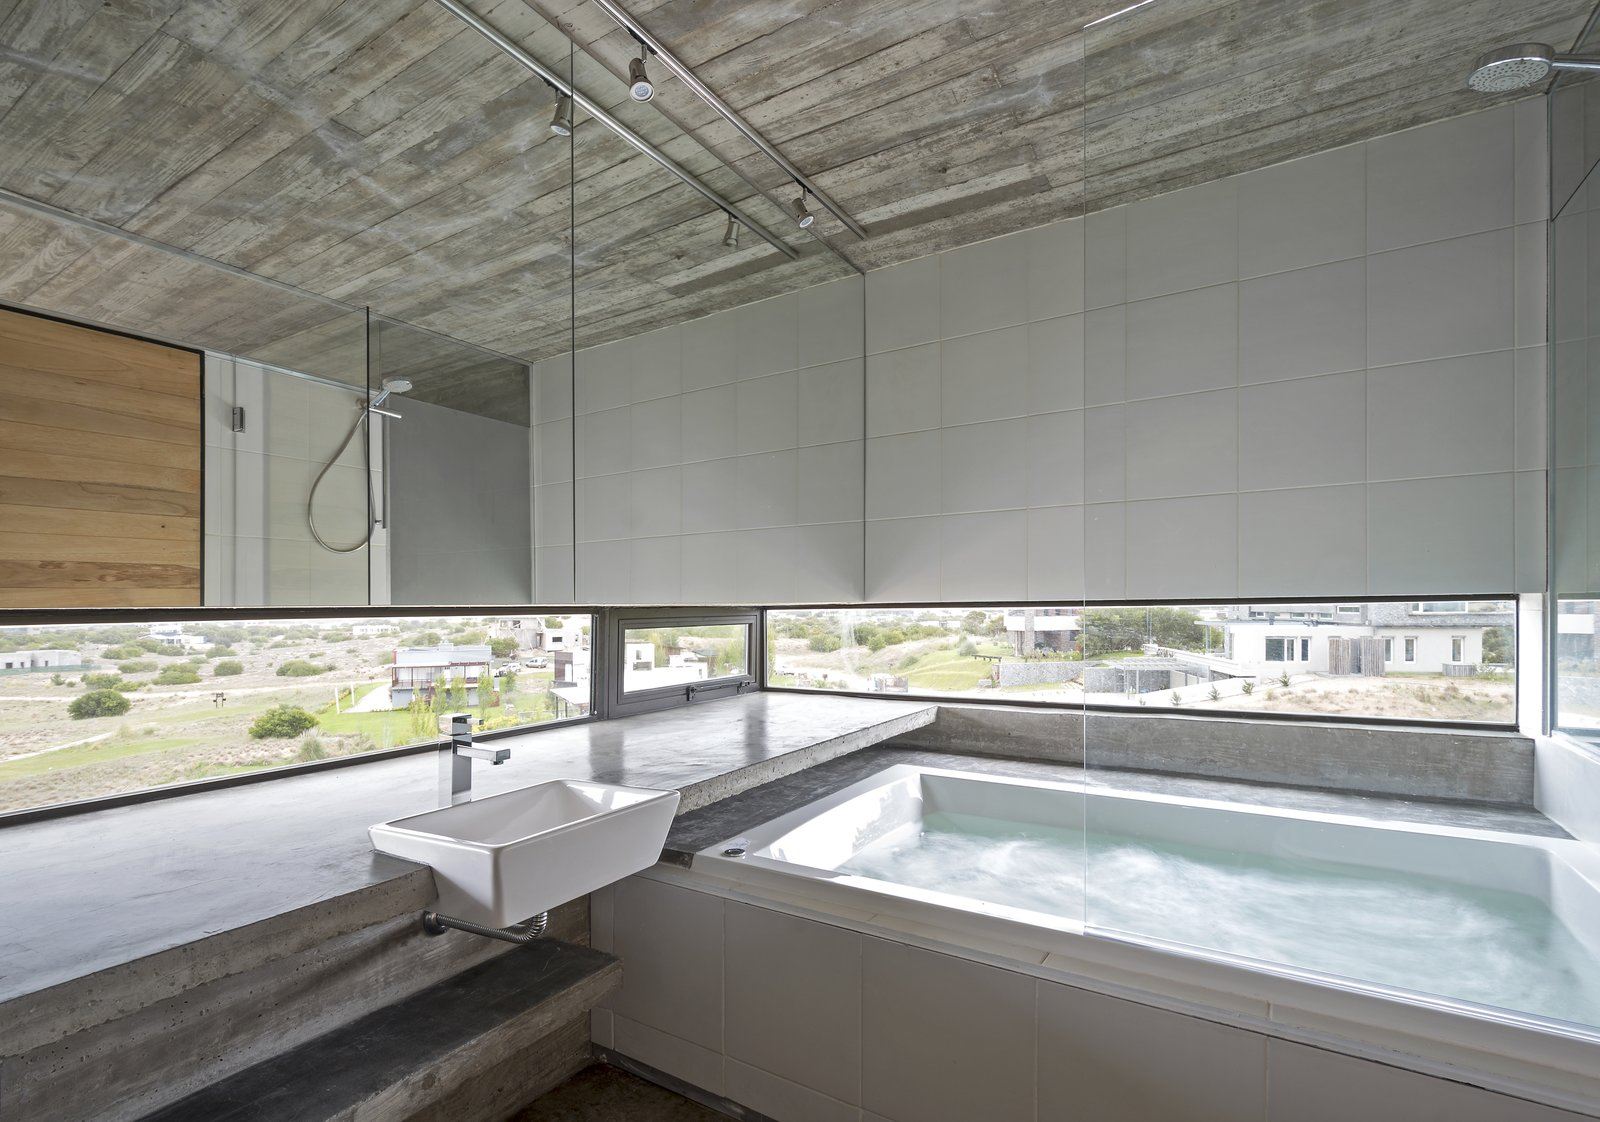 Bath Room, Concrete Counter, Whirlpool Tub, Concrete Floor, Track Lighting, Wall Mount Sink, Concrete Wall, and Vessel Sink A jacuzzi bathtub that looks out fo views of the neighborhood.  Best Photos from This Stacked Concrete Home Is Not Your Typical Golf Course Dwelling